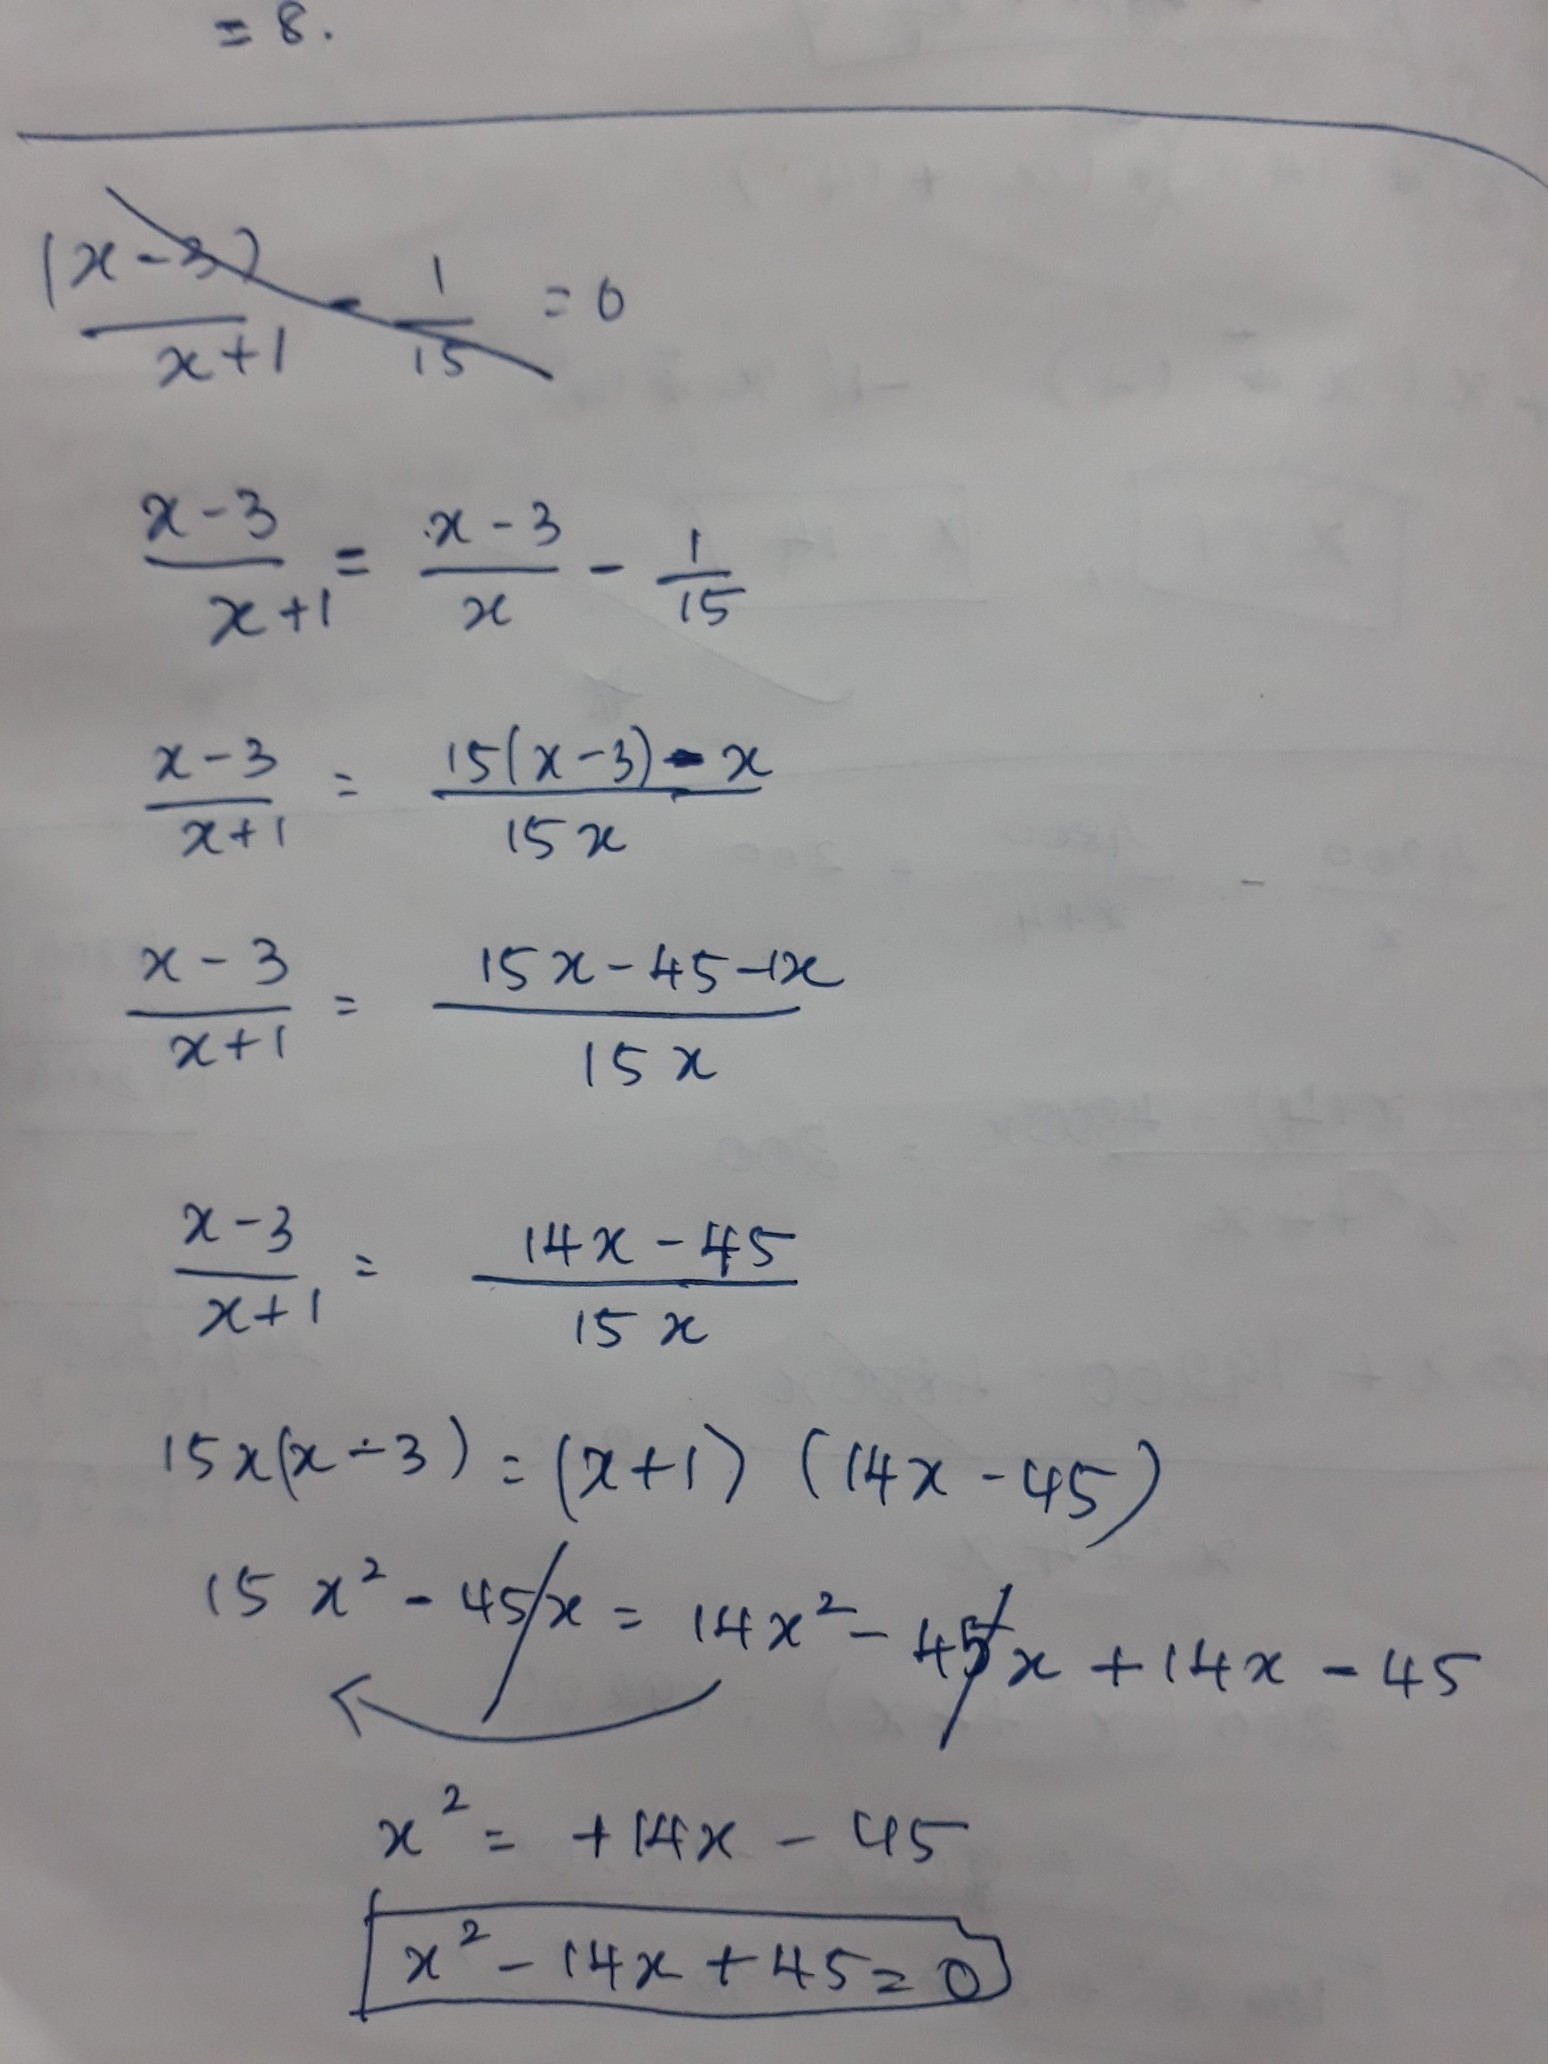 Numerator Of Fraction Is 3 Less Than Its Denominator If 1